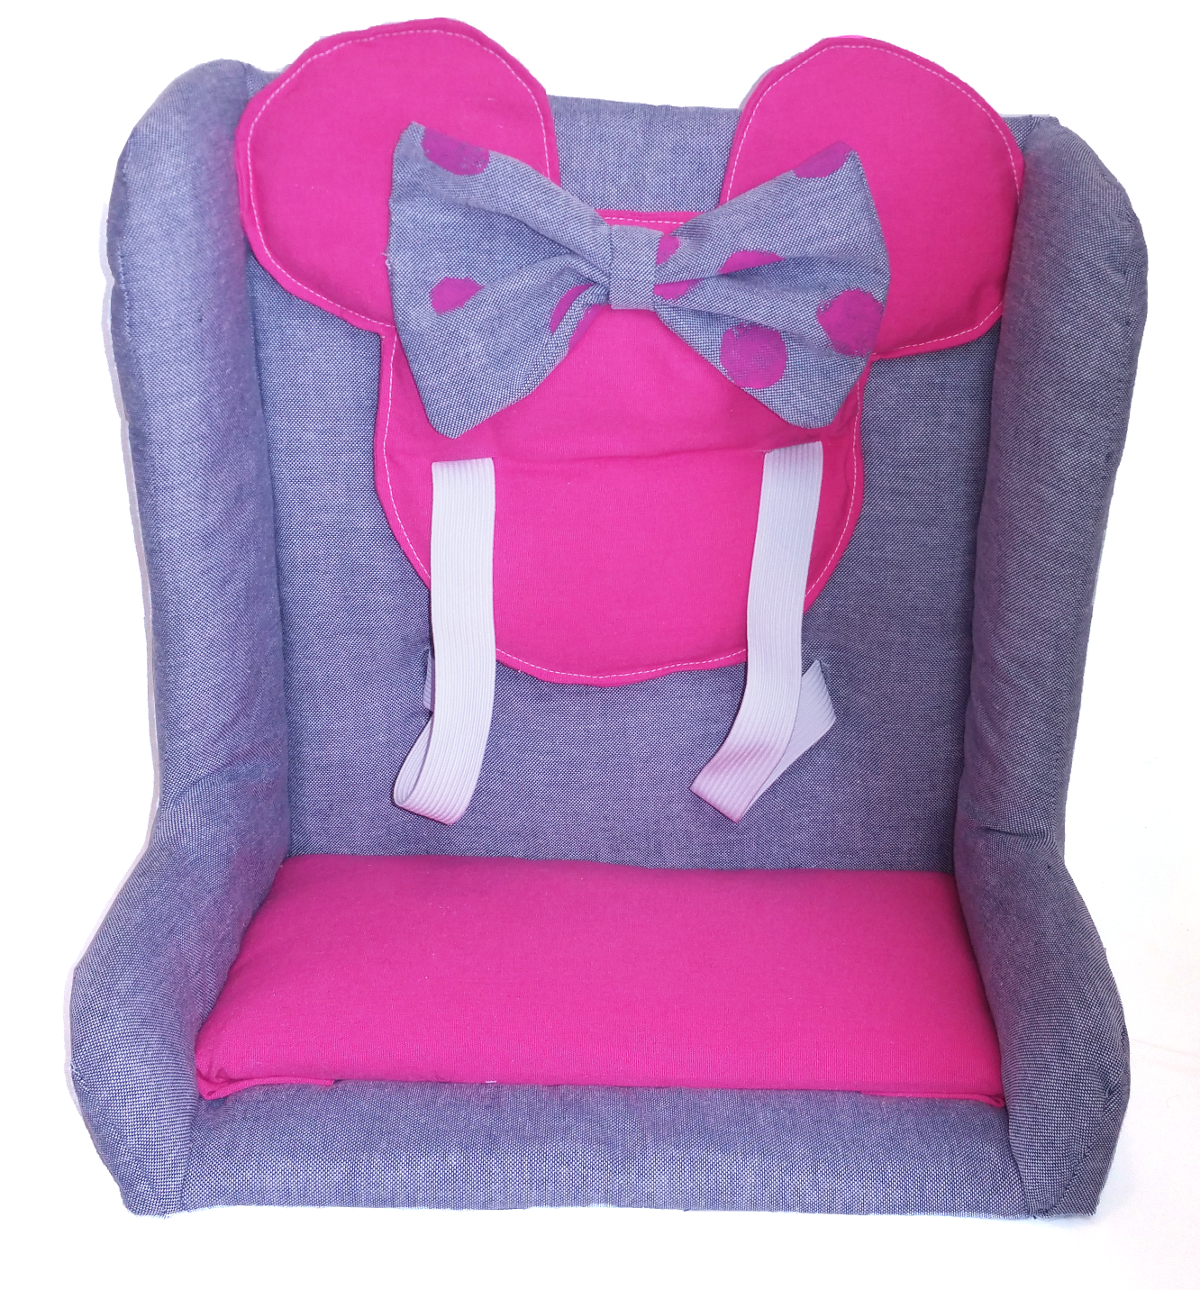 How To Make A Real Doll Car Seat